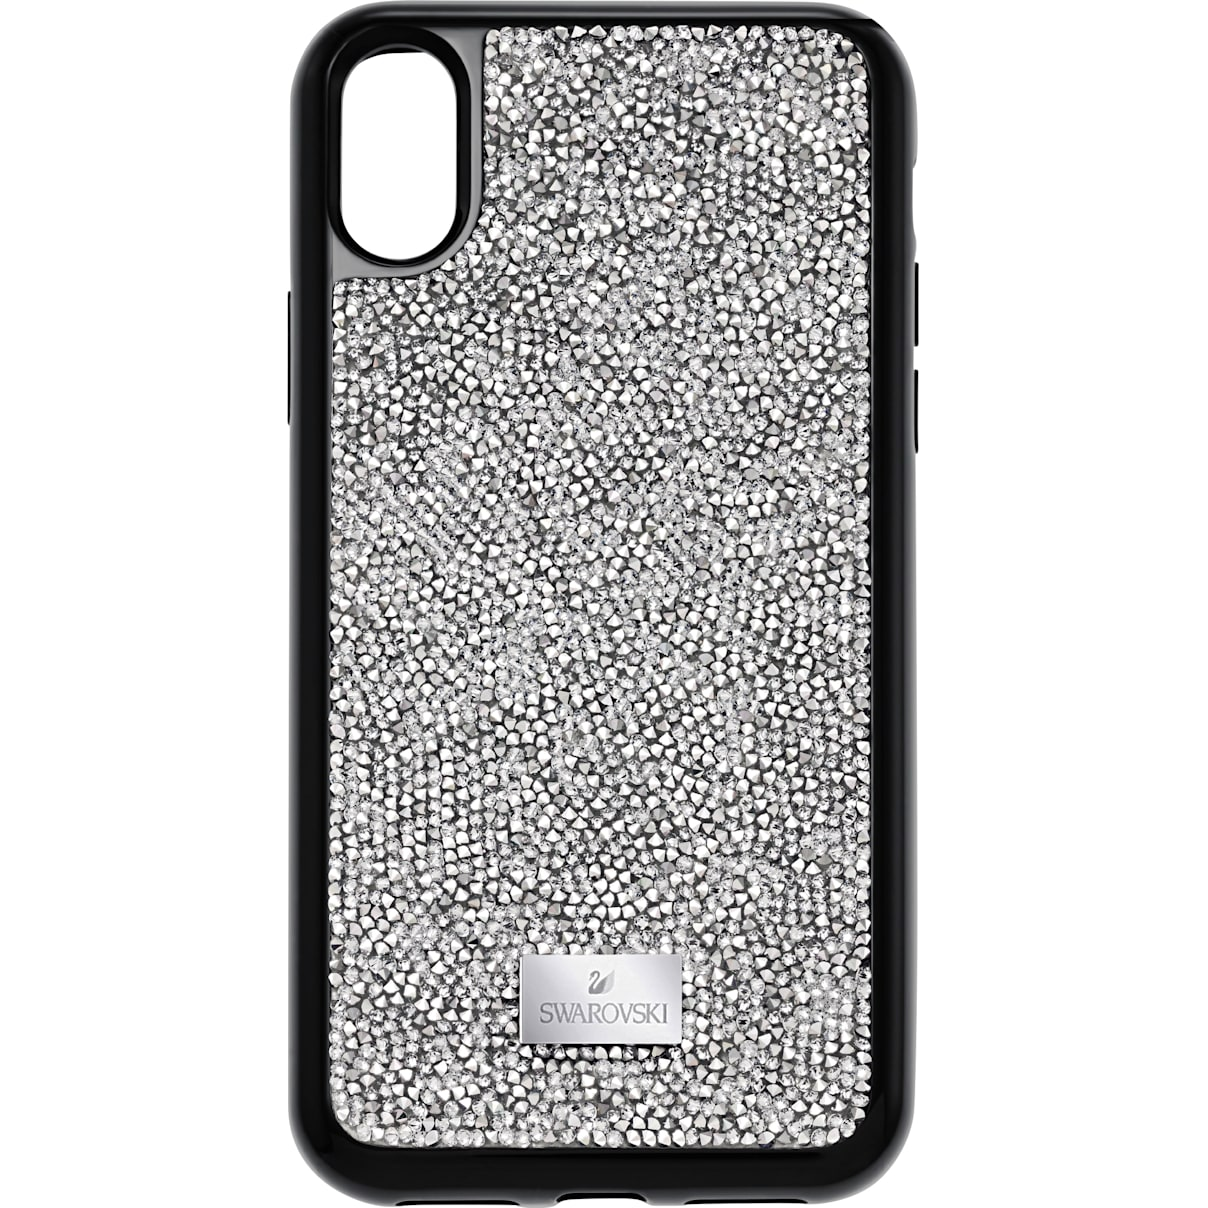 Swarovski Glam Rock Smartphone Case with integrated Bumper, iPhone® X/XS, Gray